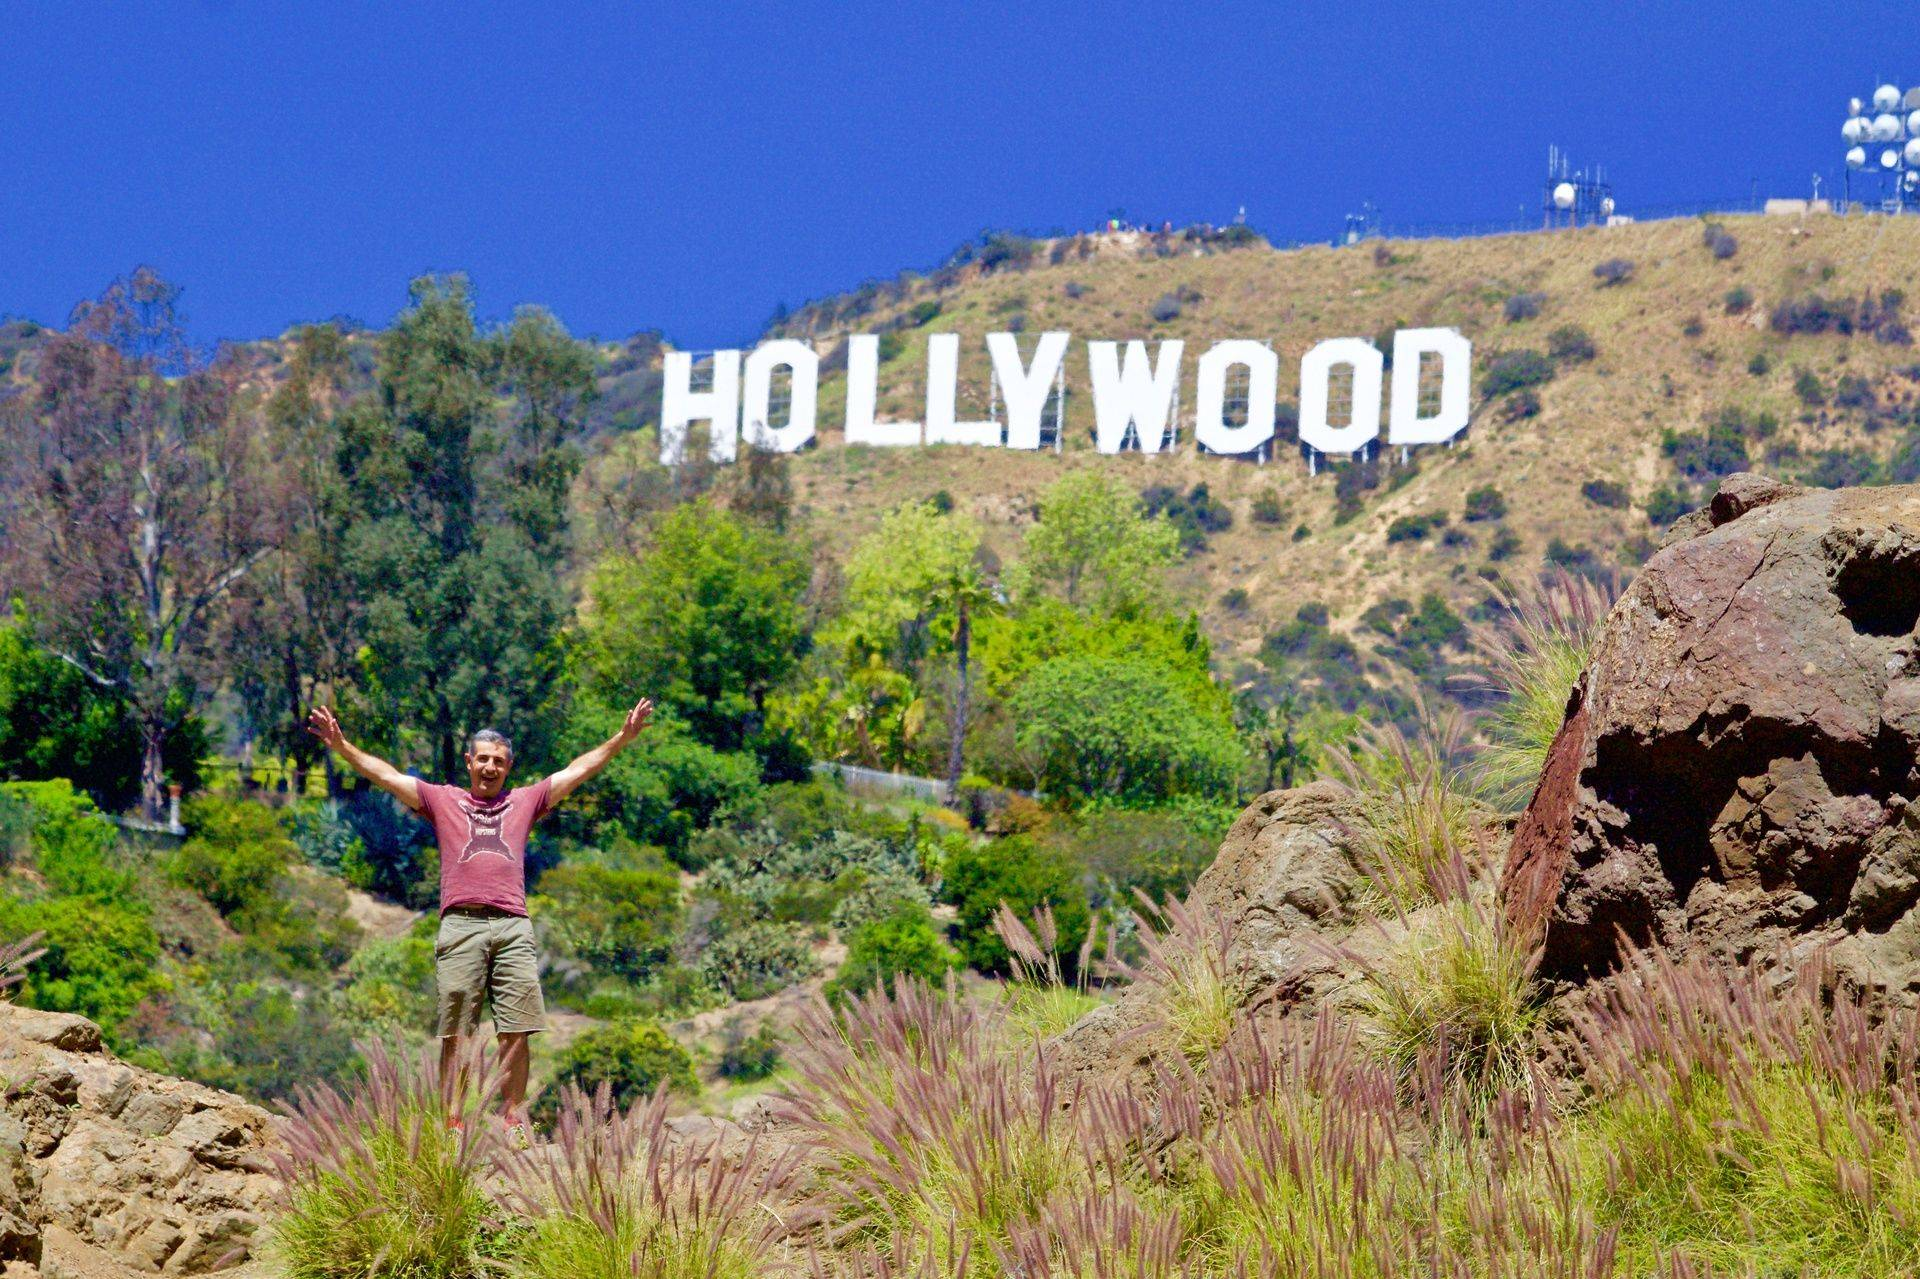 Bike Tours Hollywood Los Angeles Sightseeing Tour